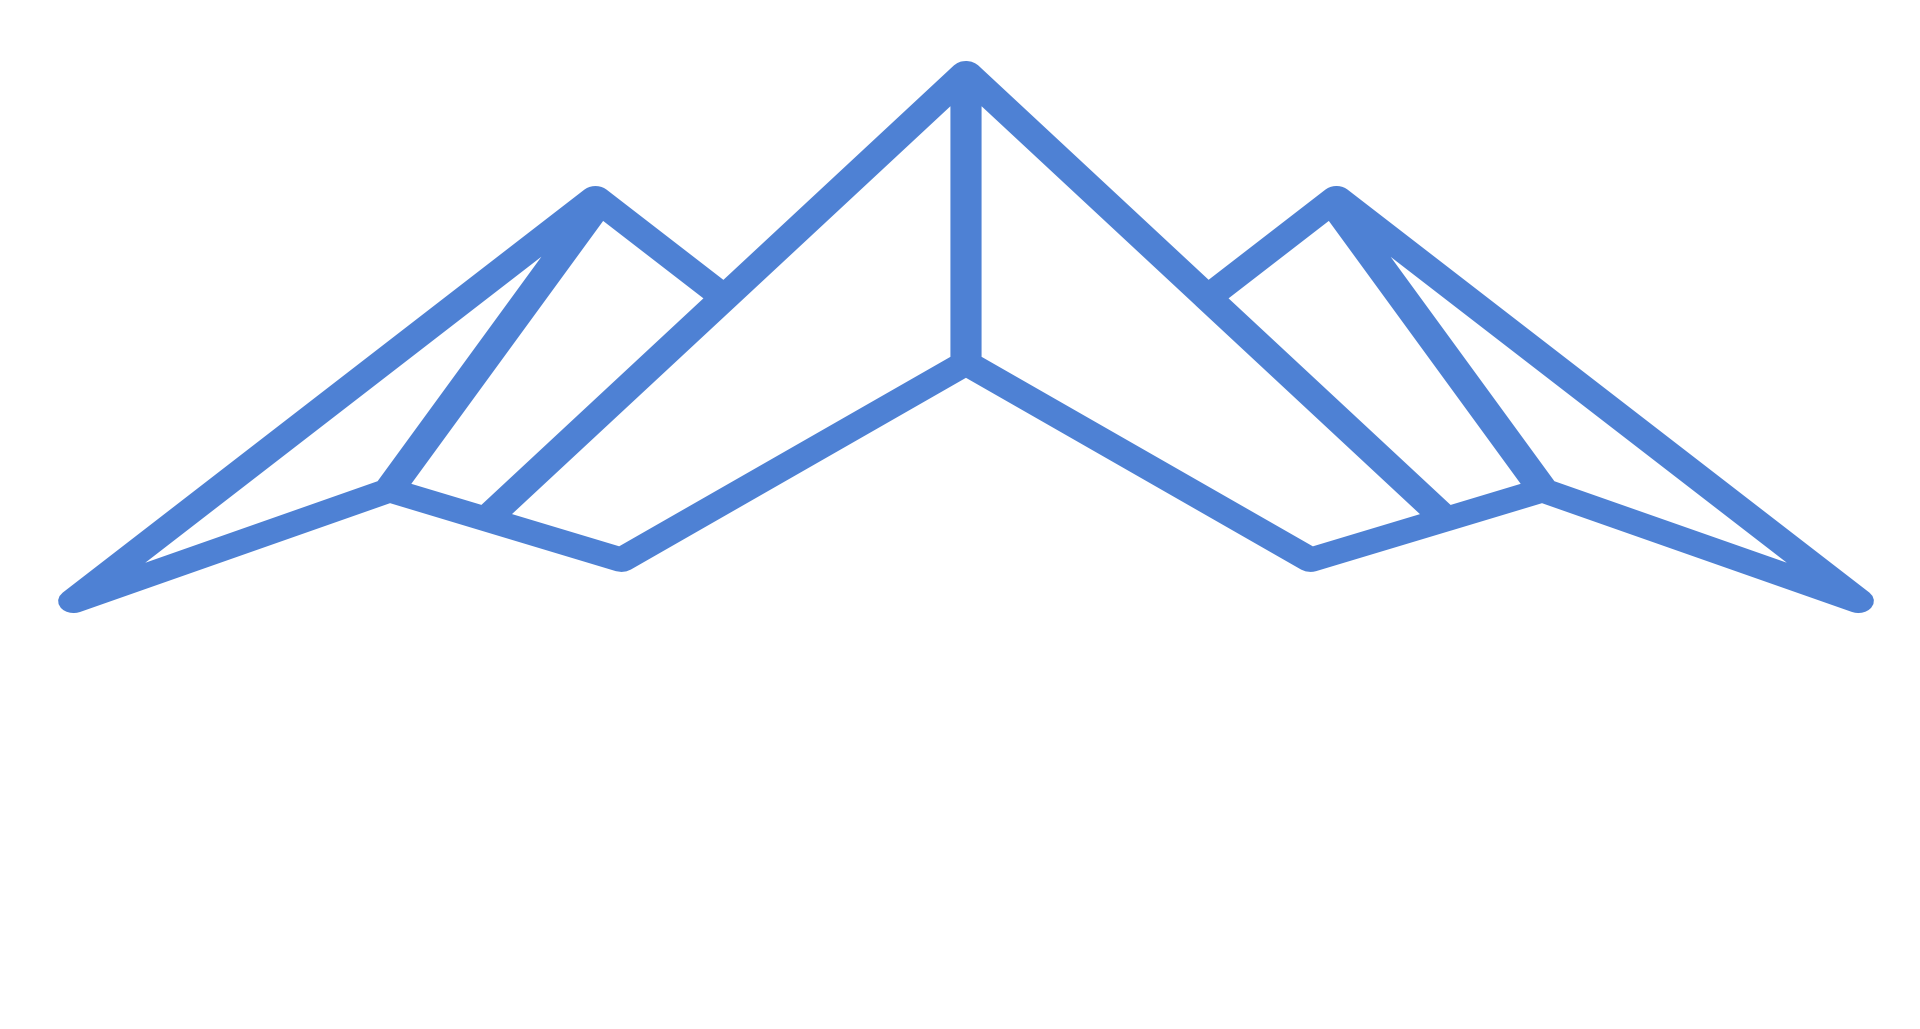 Himalaya Film Services